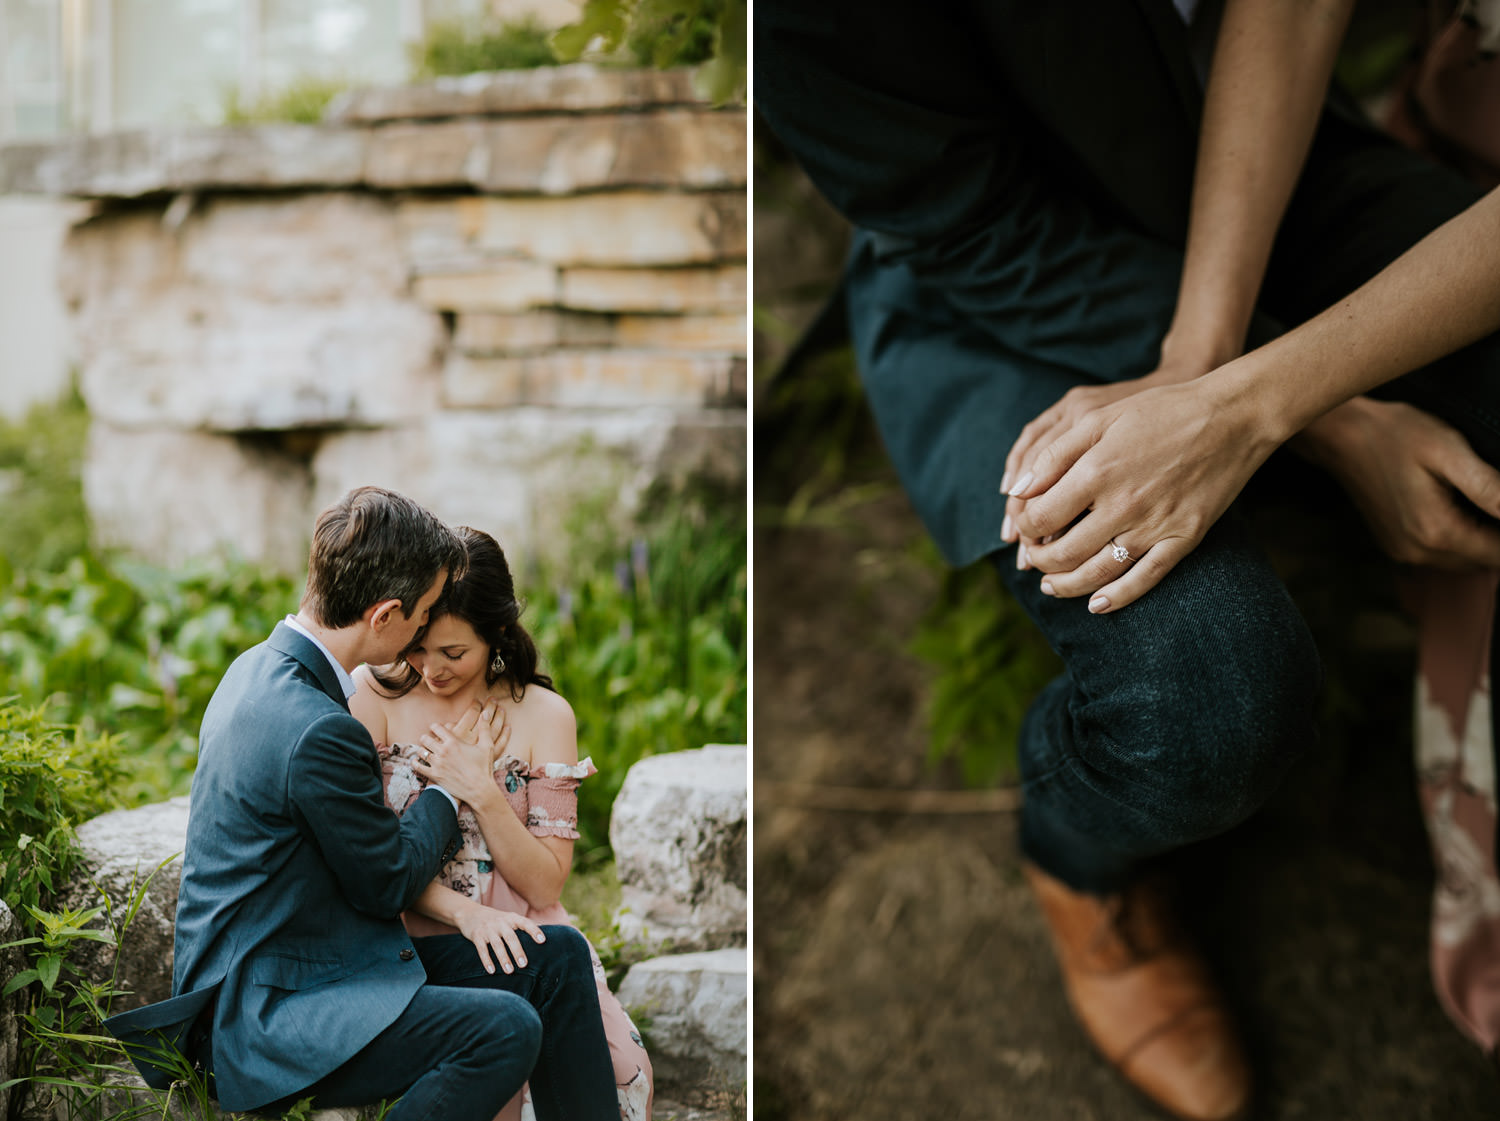 Intimate moment between future bride and groom captured during engagement session in Lincoln Park